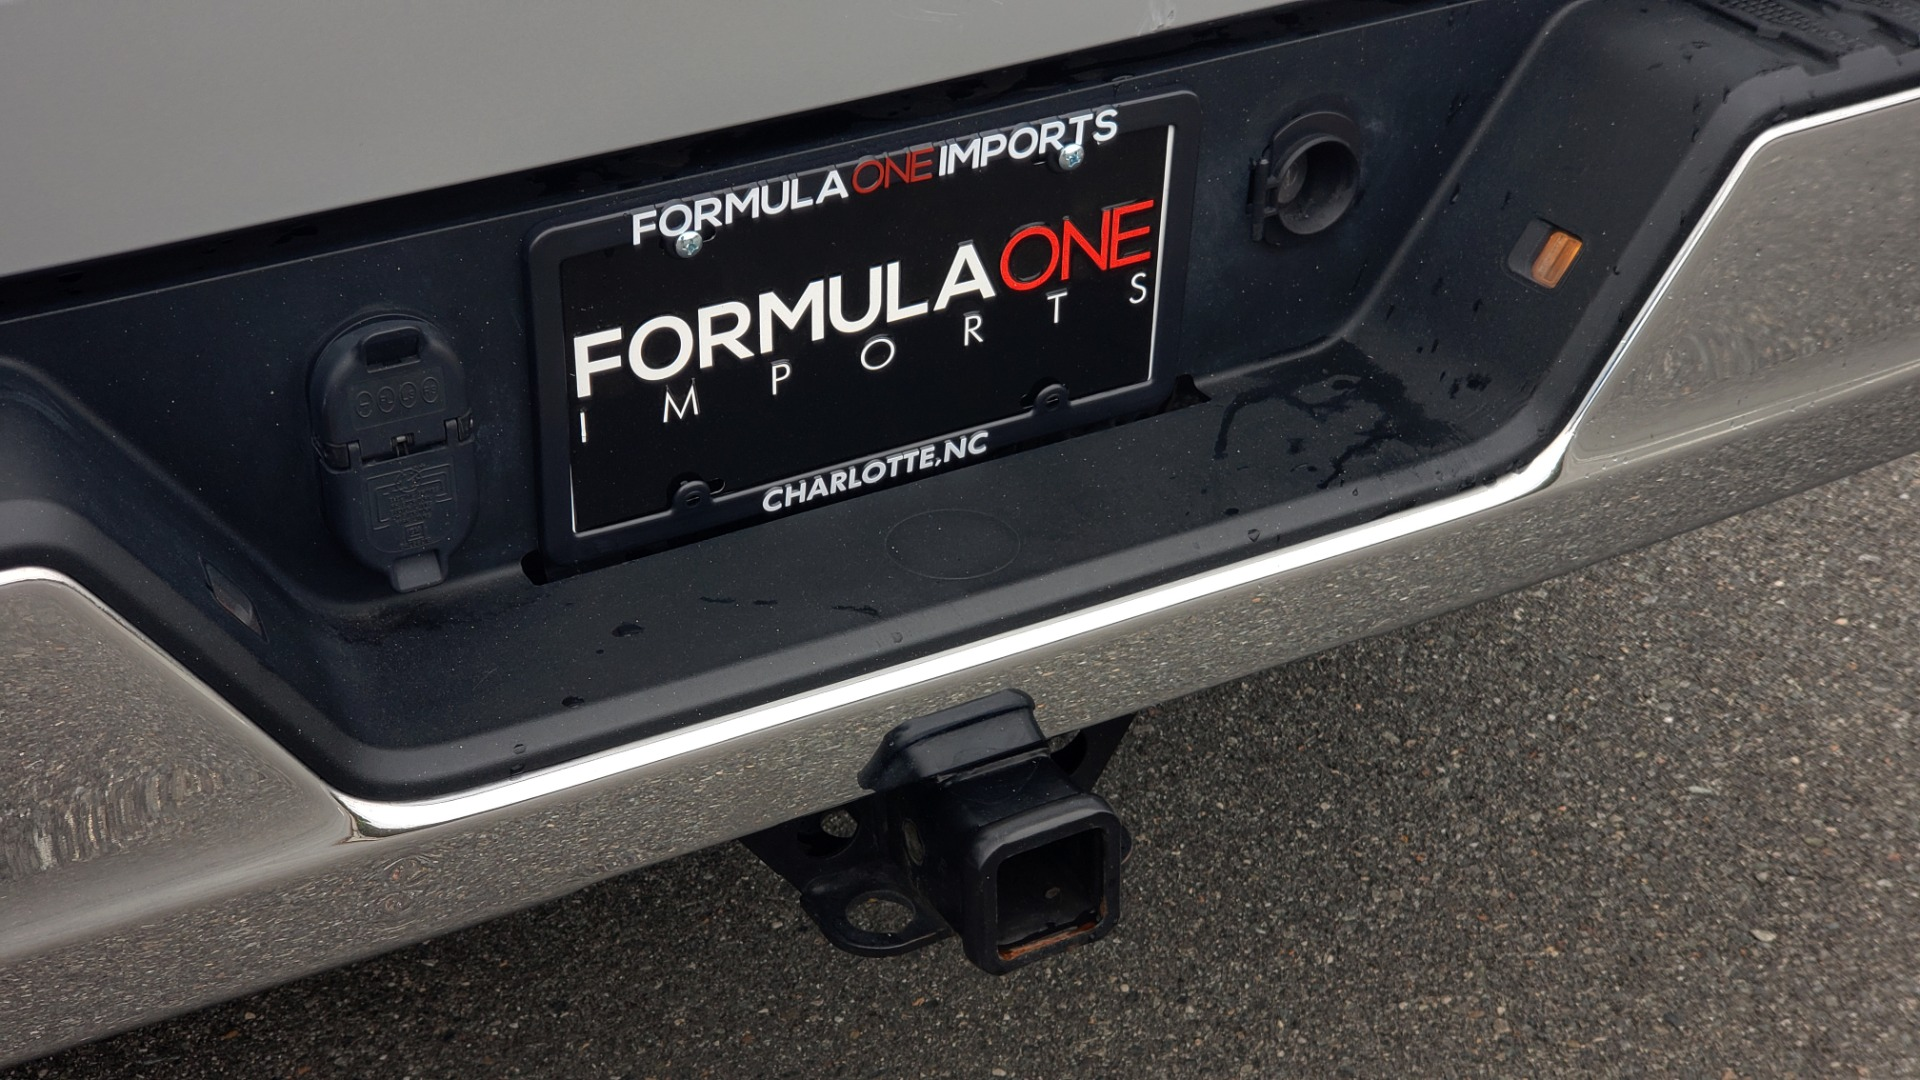 Used 2020 Chevrolet SILVERADO 1500 LT 4WD DOUBLECAB 147 WB / 5.3L V8 / BEDLINER / REARVIEW for sale $41,995 at Formula Imports in Charlotte NC 28227 29